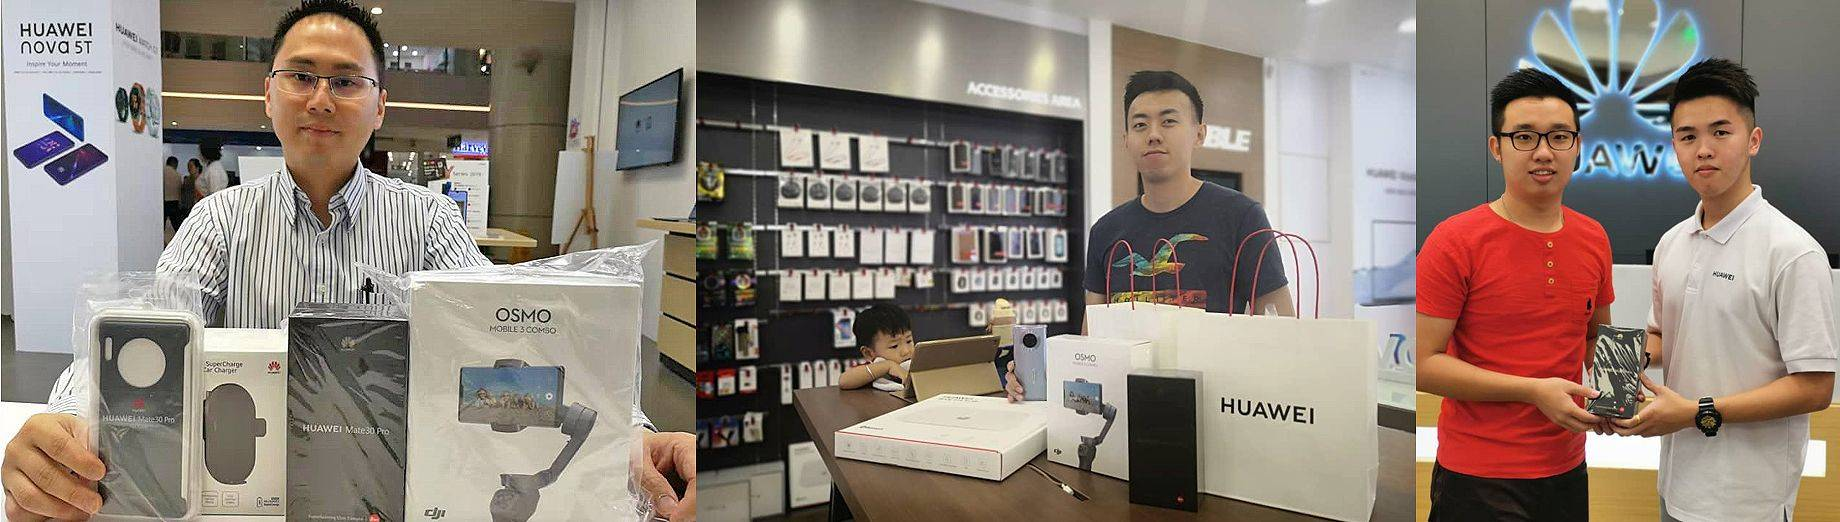 Proud customers with their Huawei products